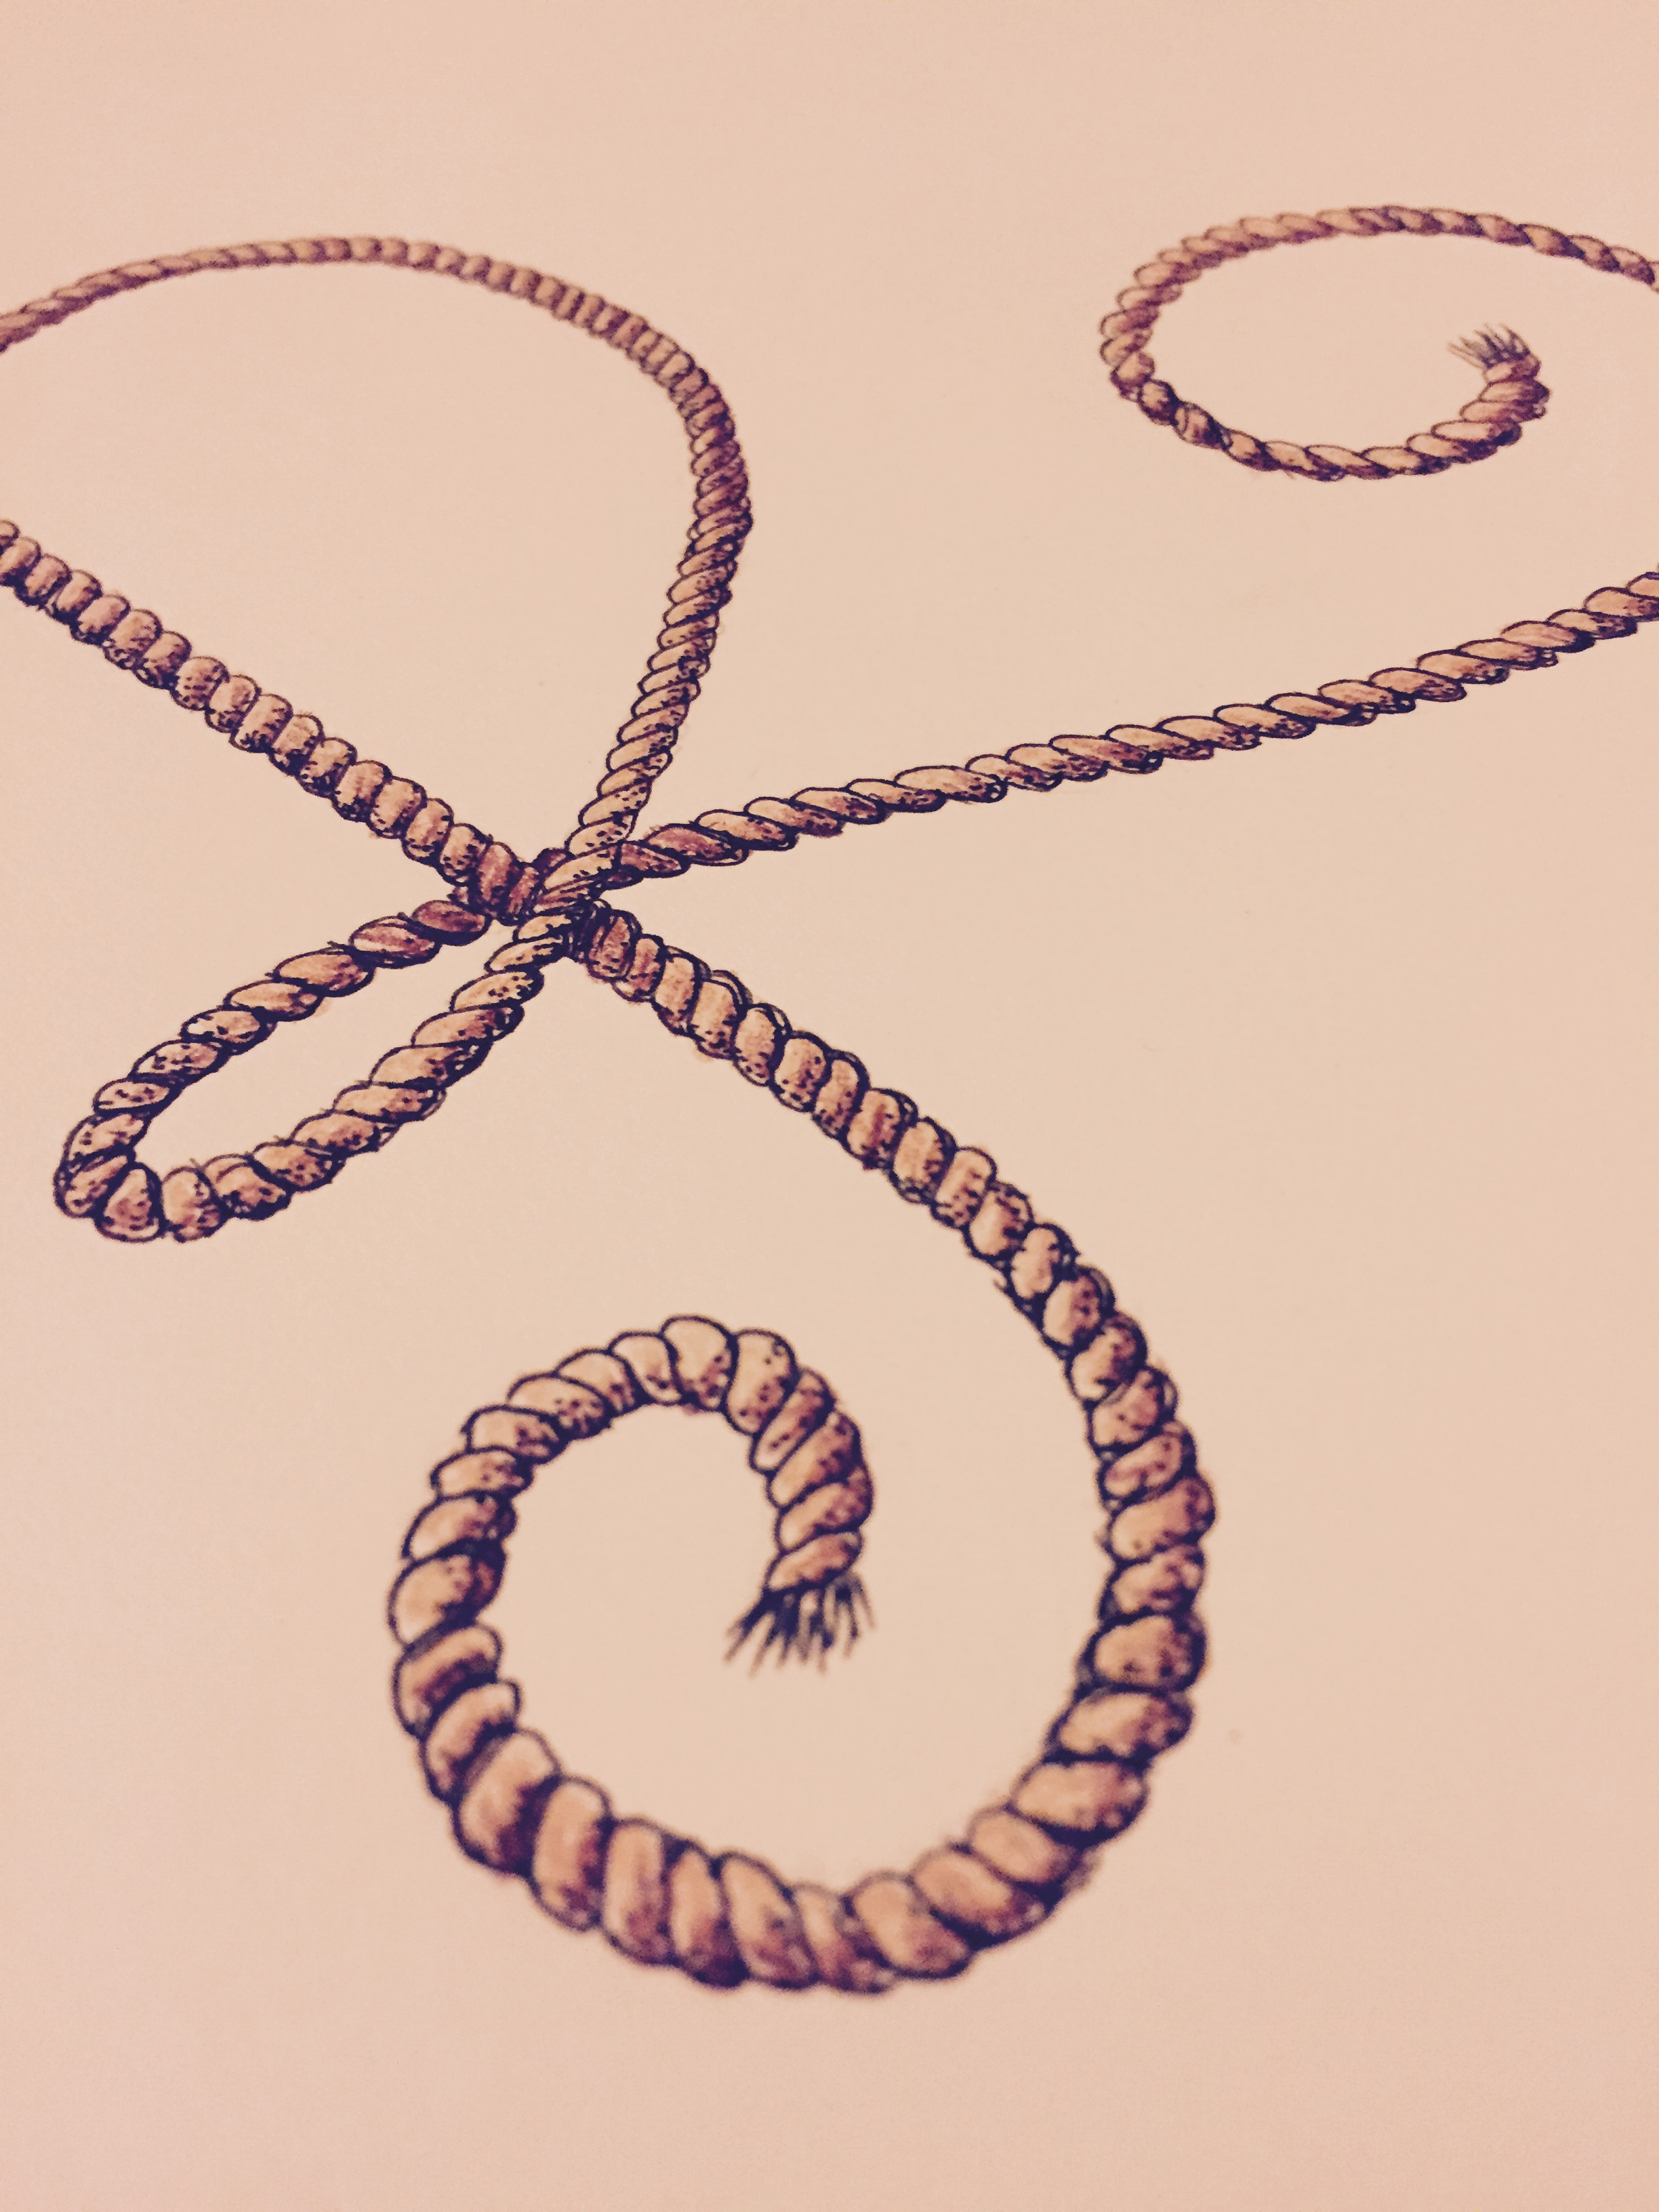 Lettering experiment R like rope by Cécile Parker